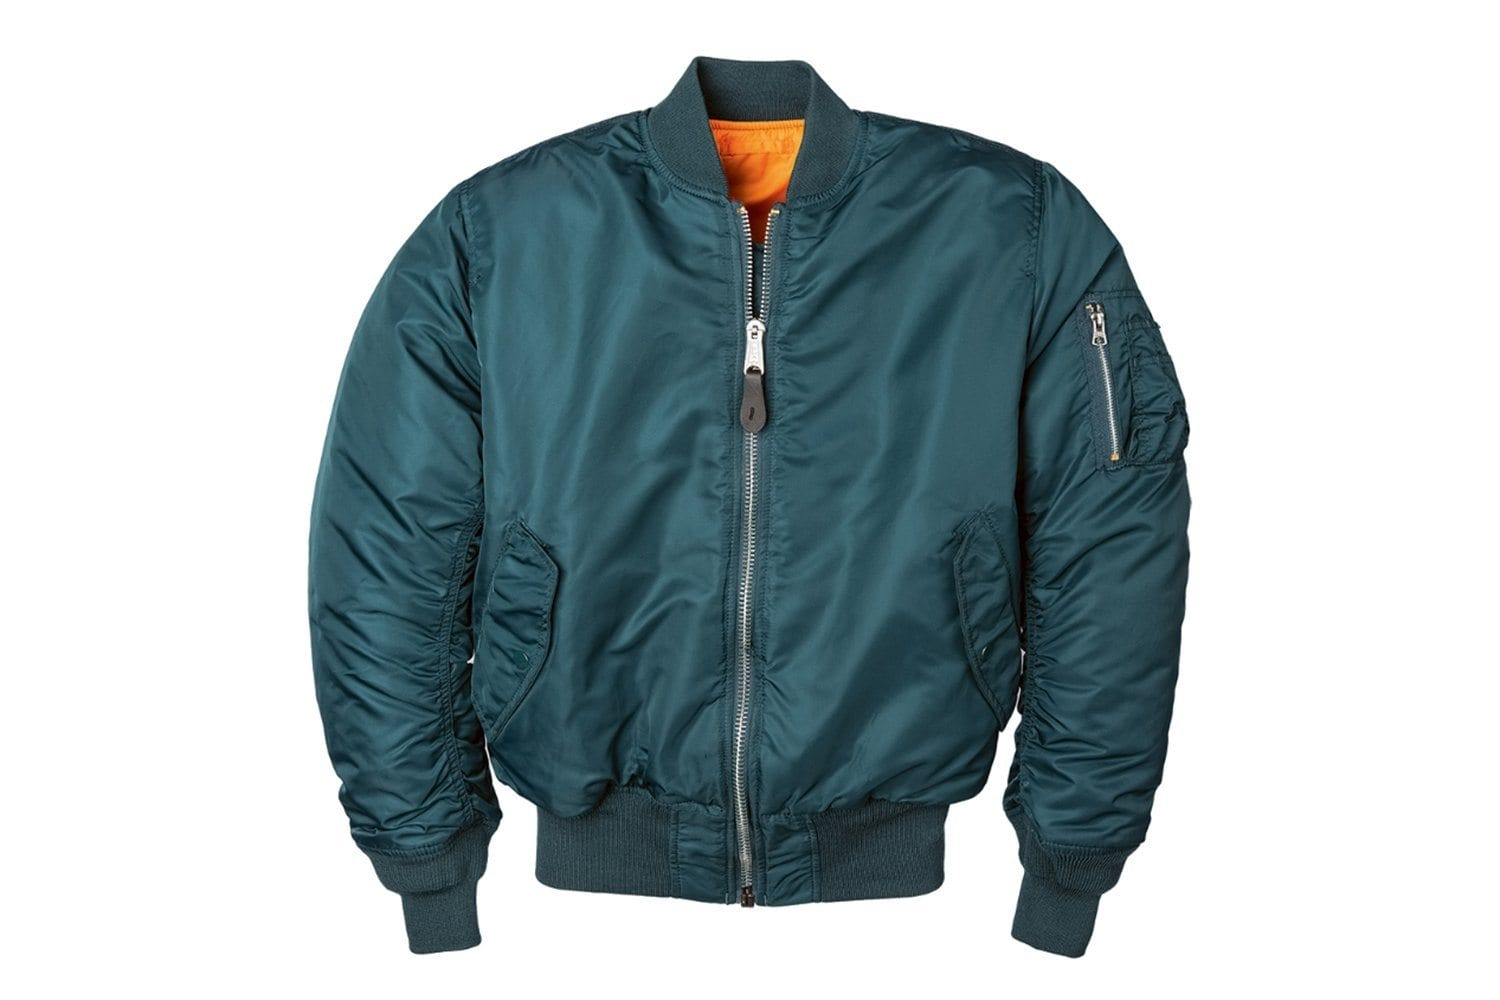 ALPHA MA-1 FLIGHT JACKET MENS SOFTGOODS ALPHA INDUSTRIES NAVY L